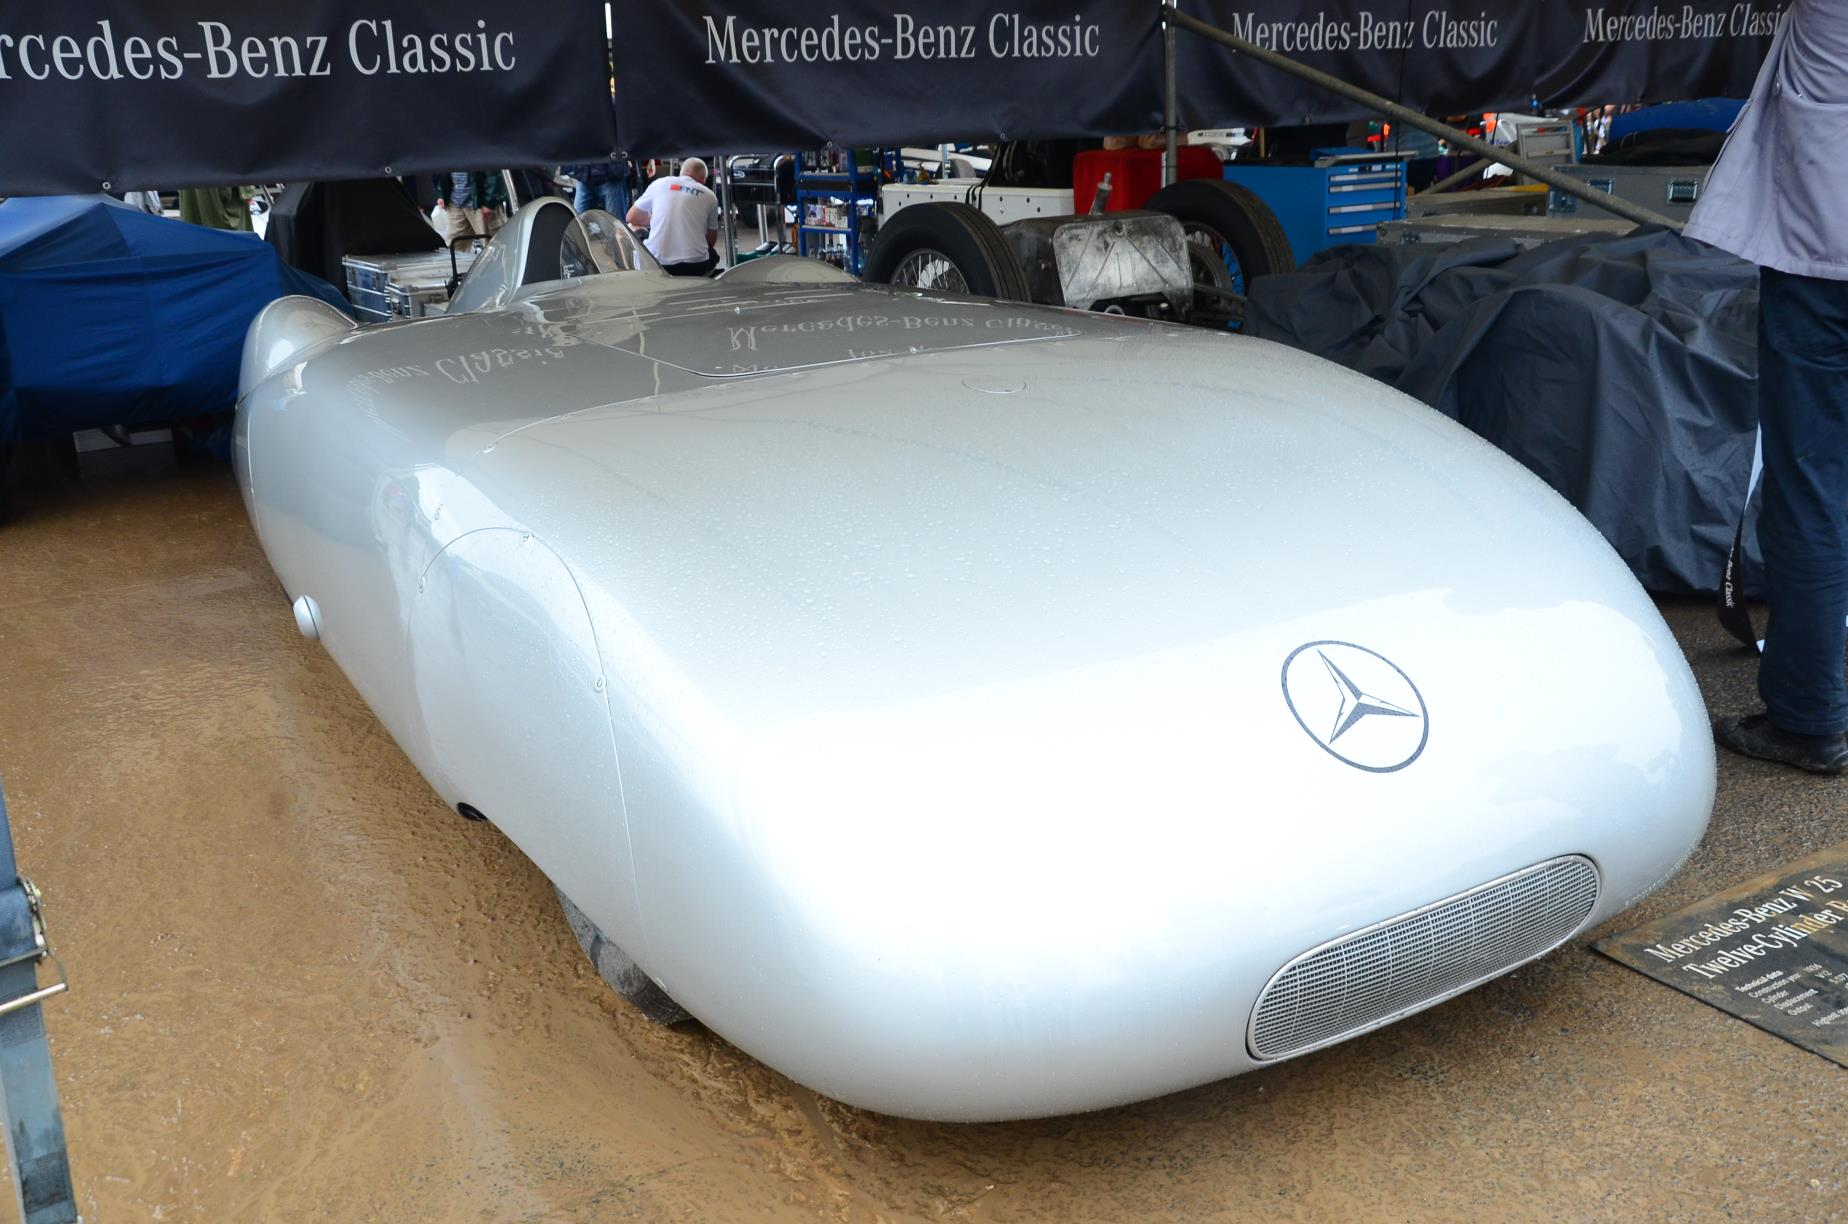 1936 Mercedes Benz W25 AVUS Streamliner 3